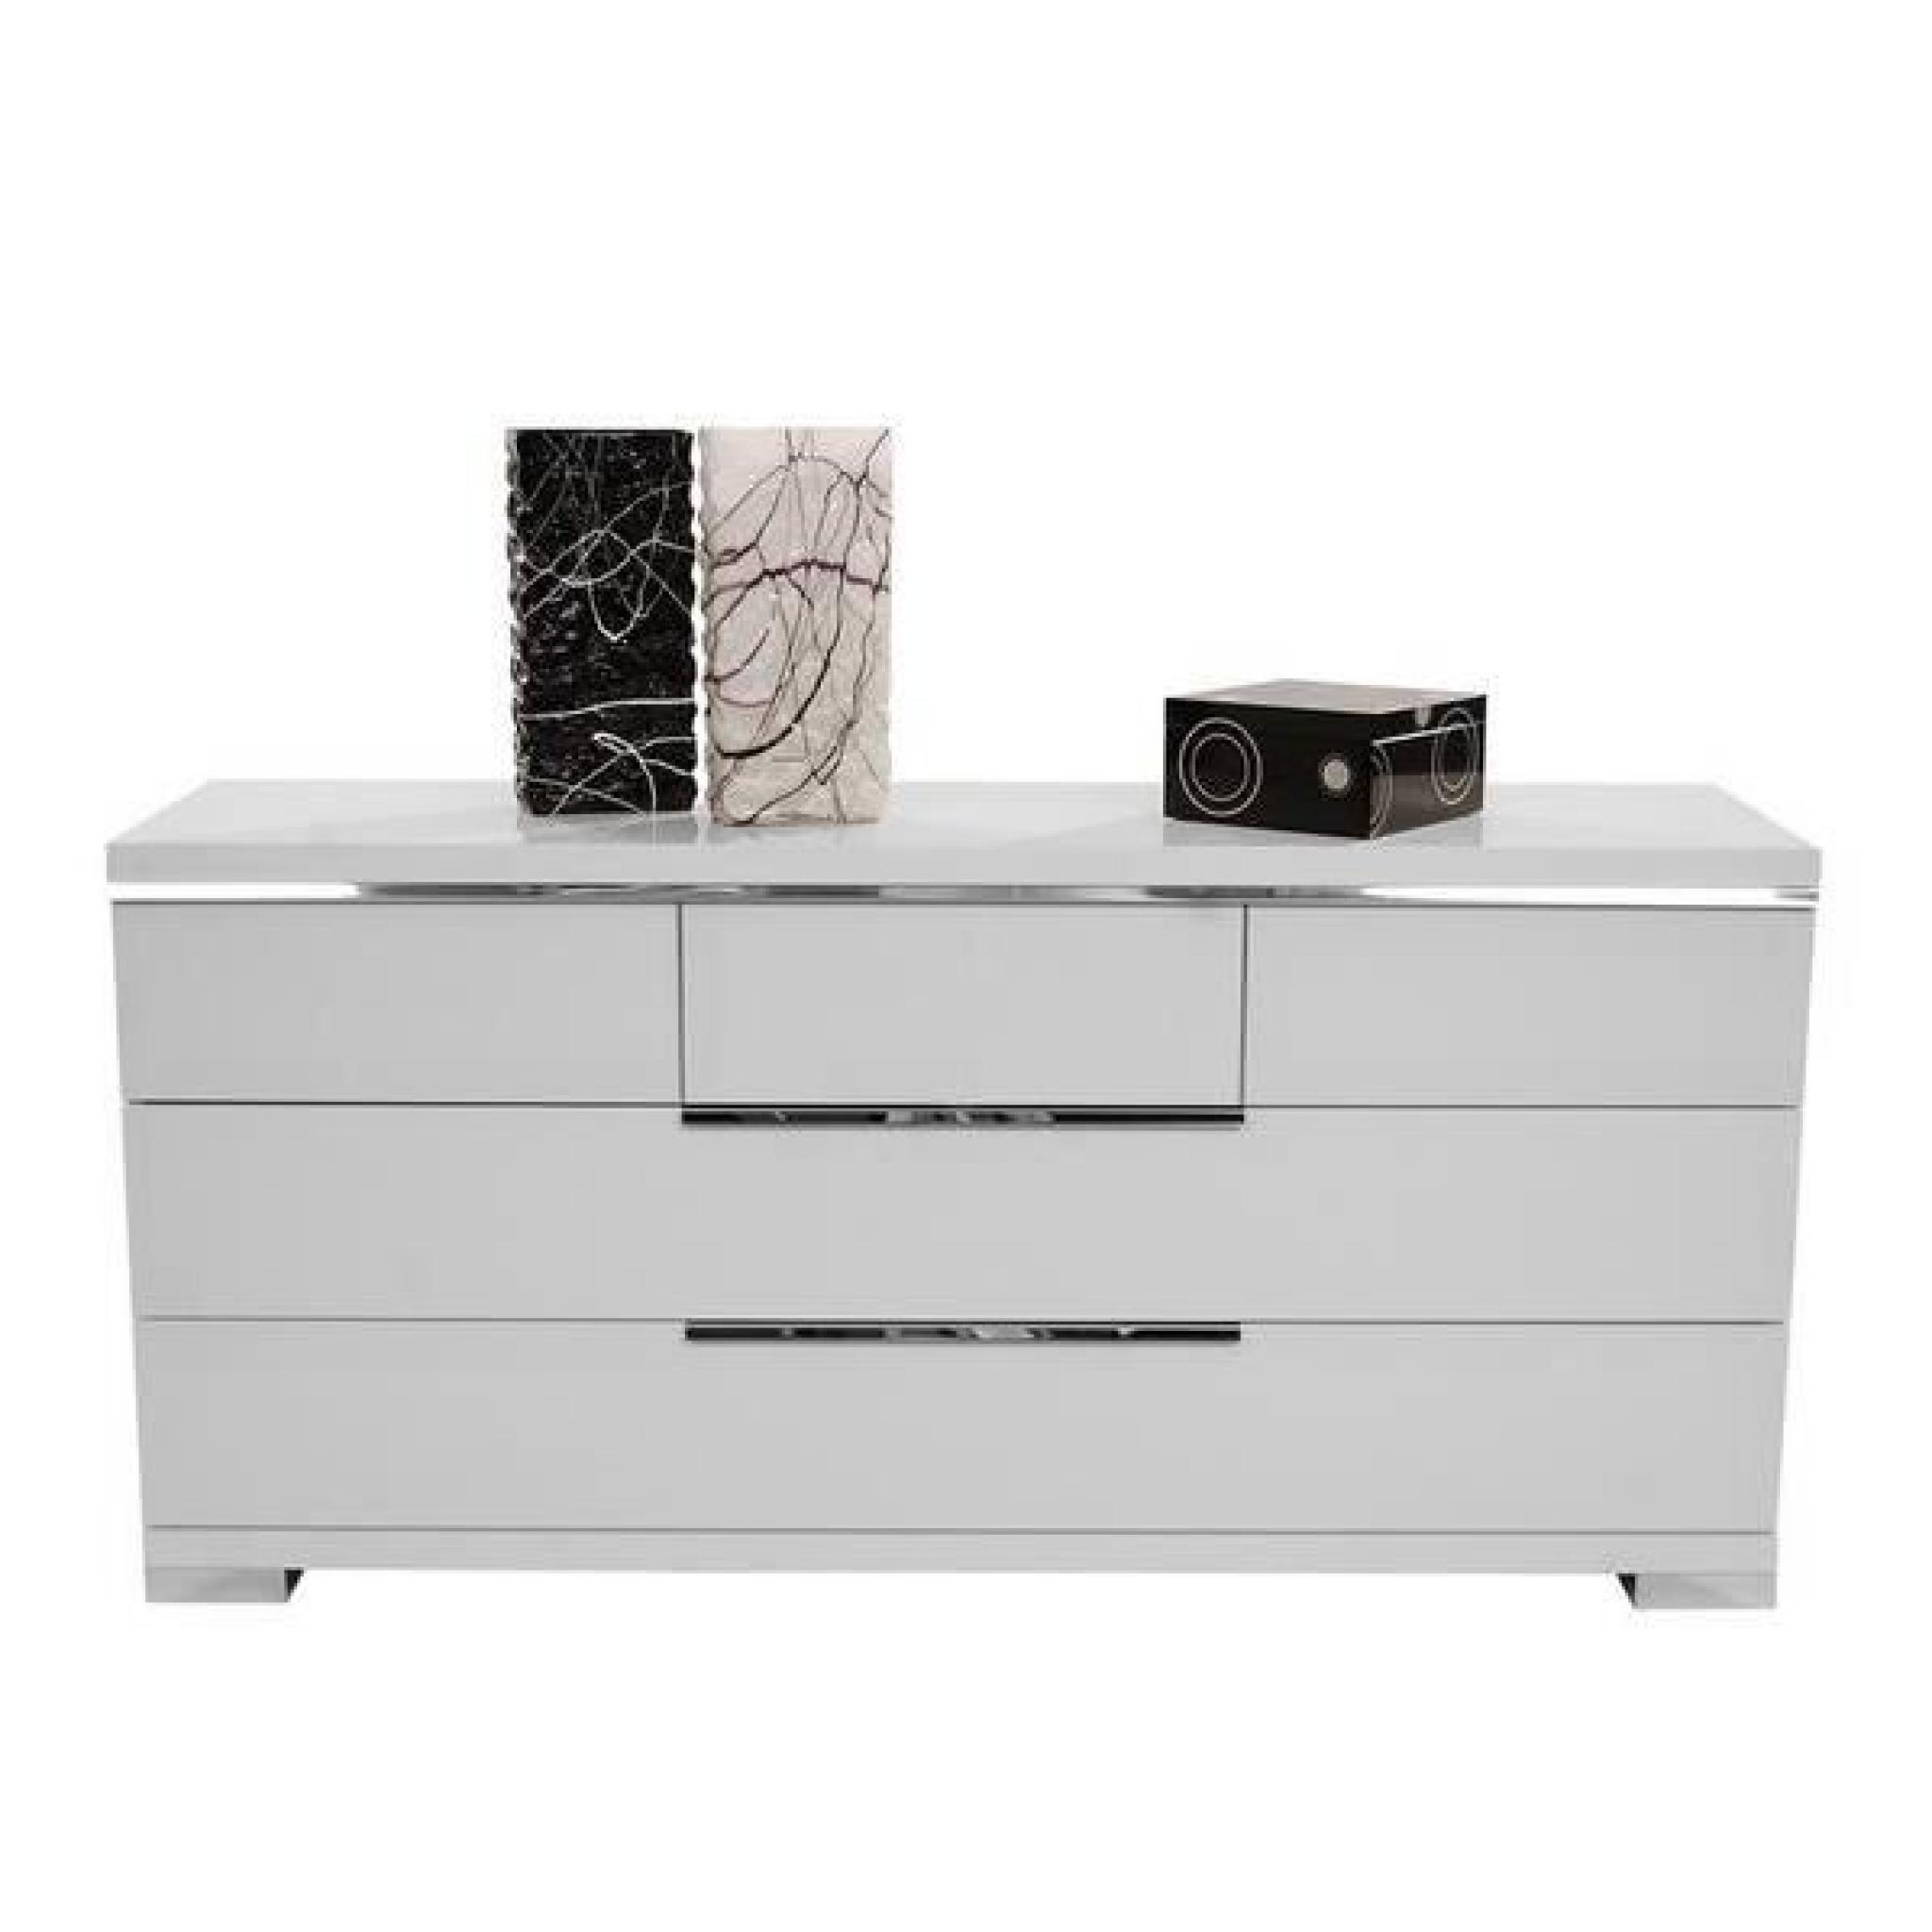 commode glossy blanc 6 tiroirs achat vente commode pas cher couleur et. Black Bedroom Furniture Sets. Home Design Ideas